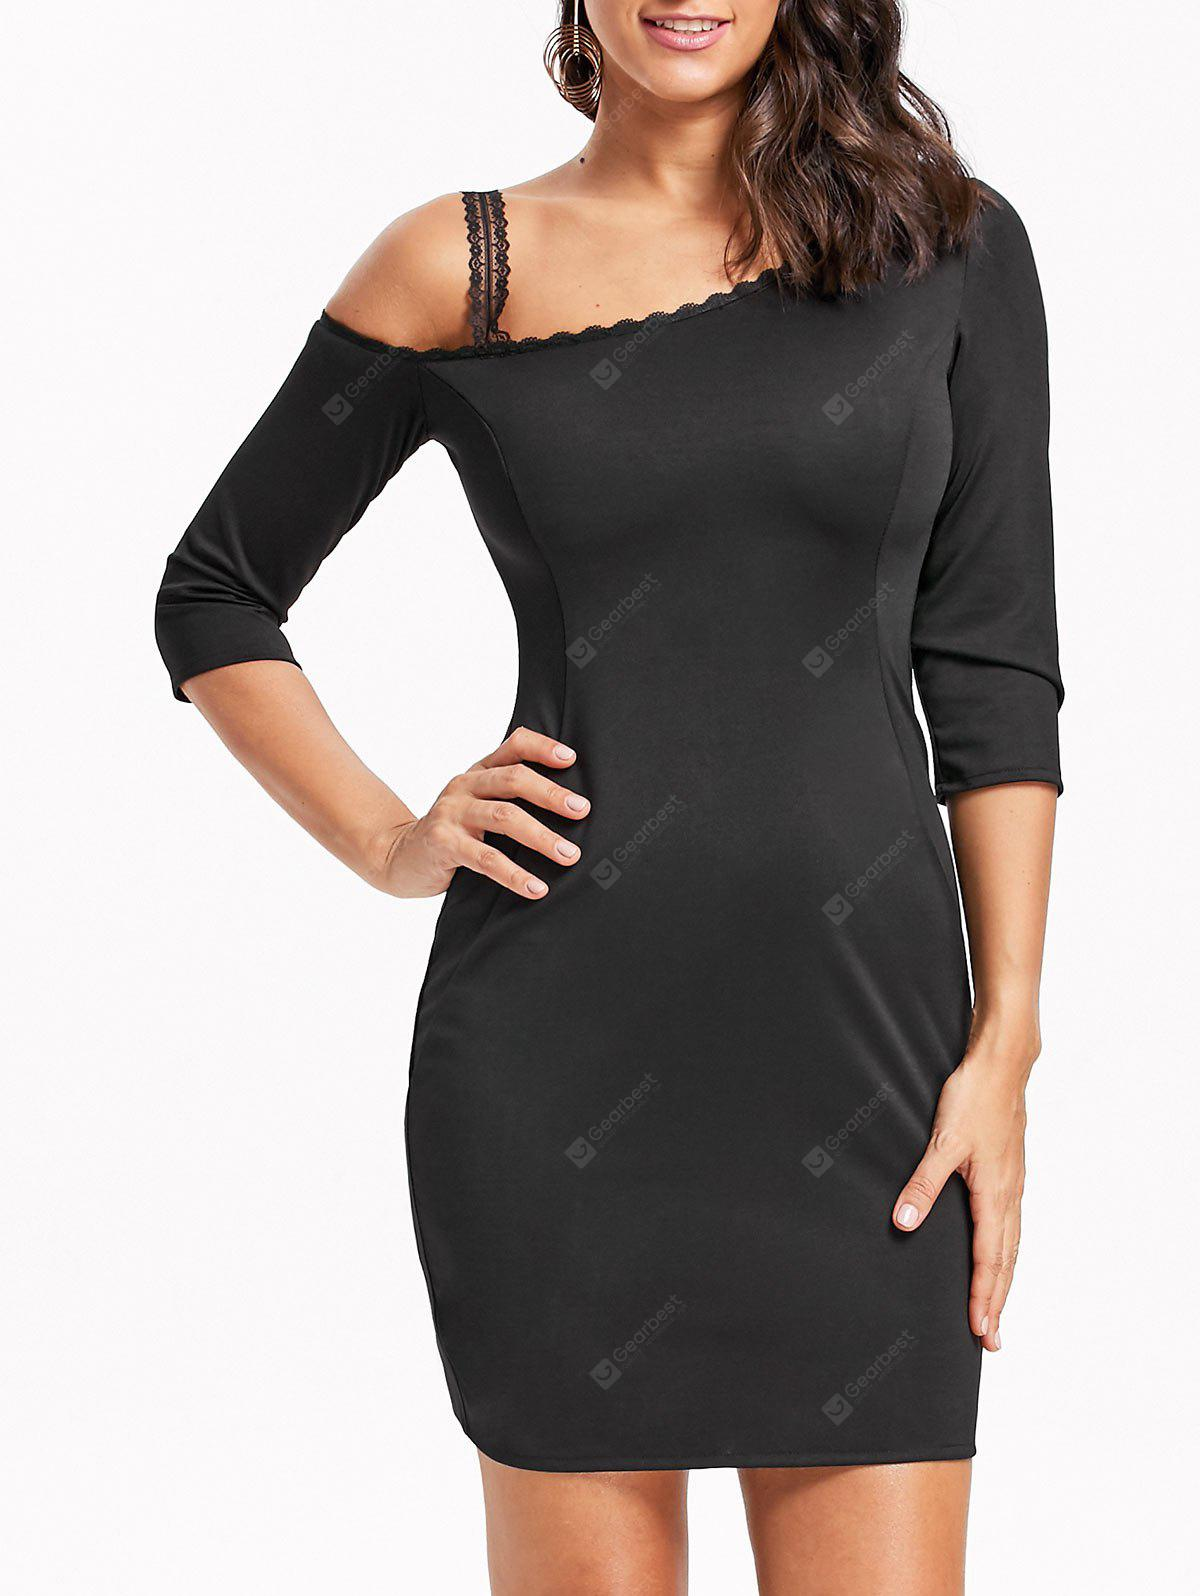 Skew Neck Lace Trim Bodycon Mini Dress